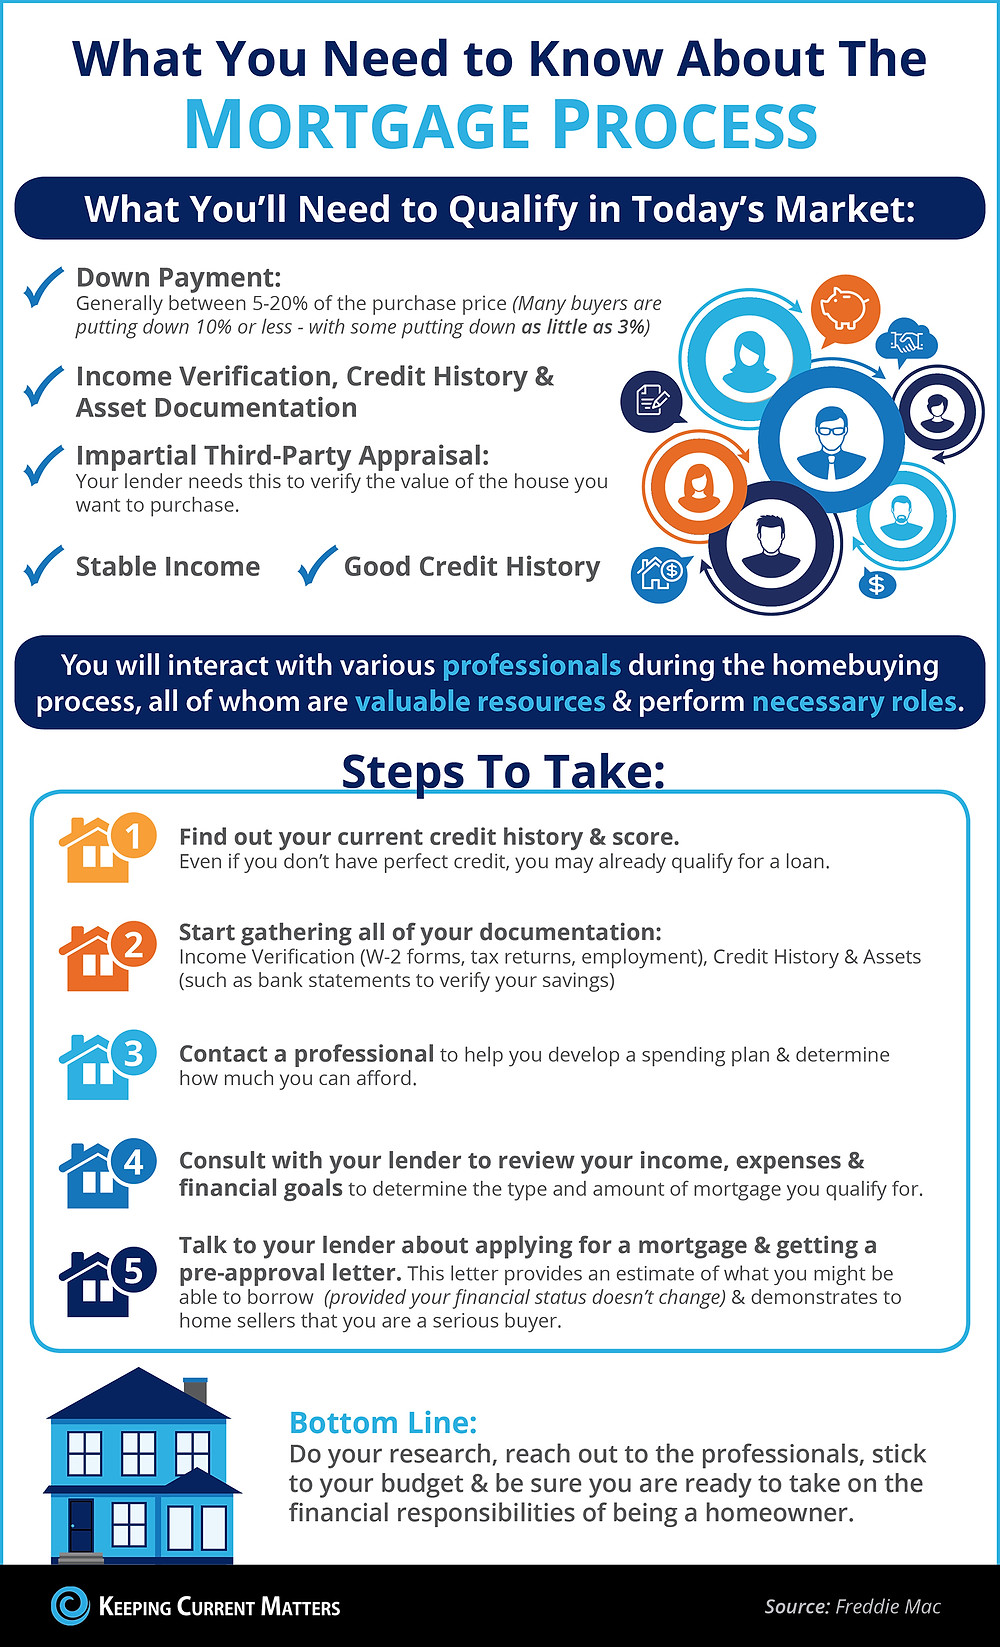 the mortgage process; down payment to good credit